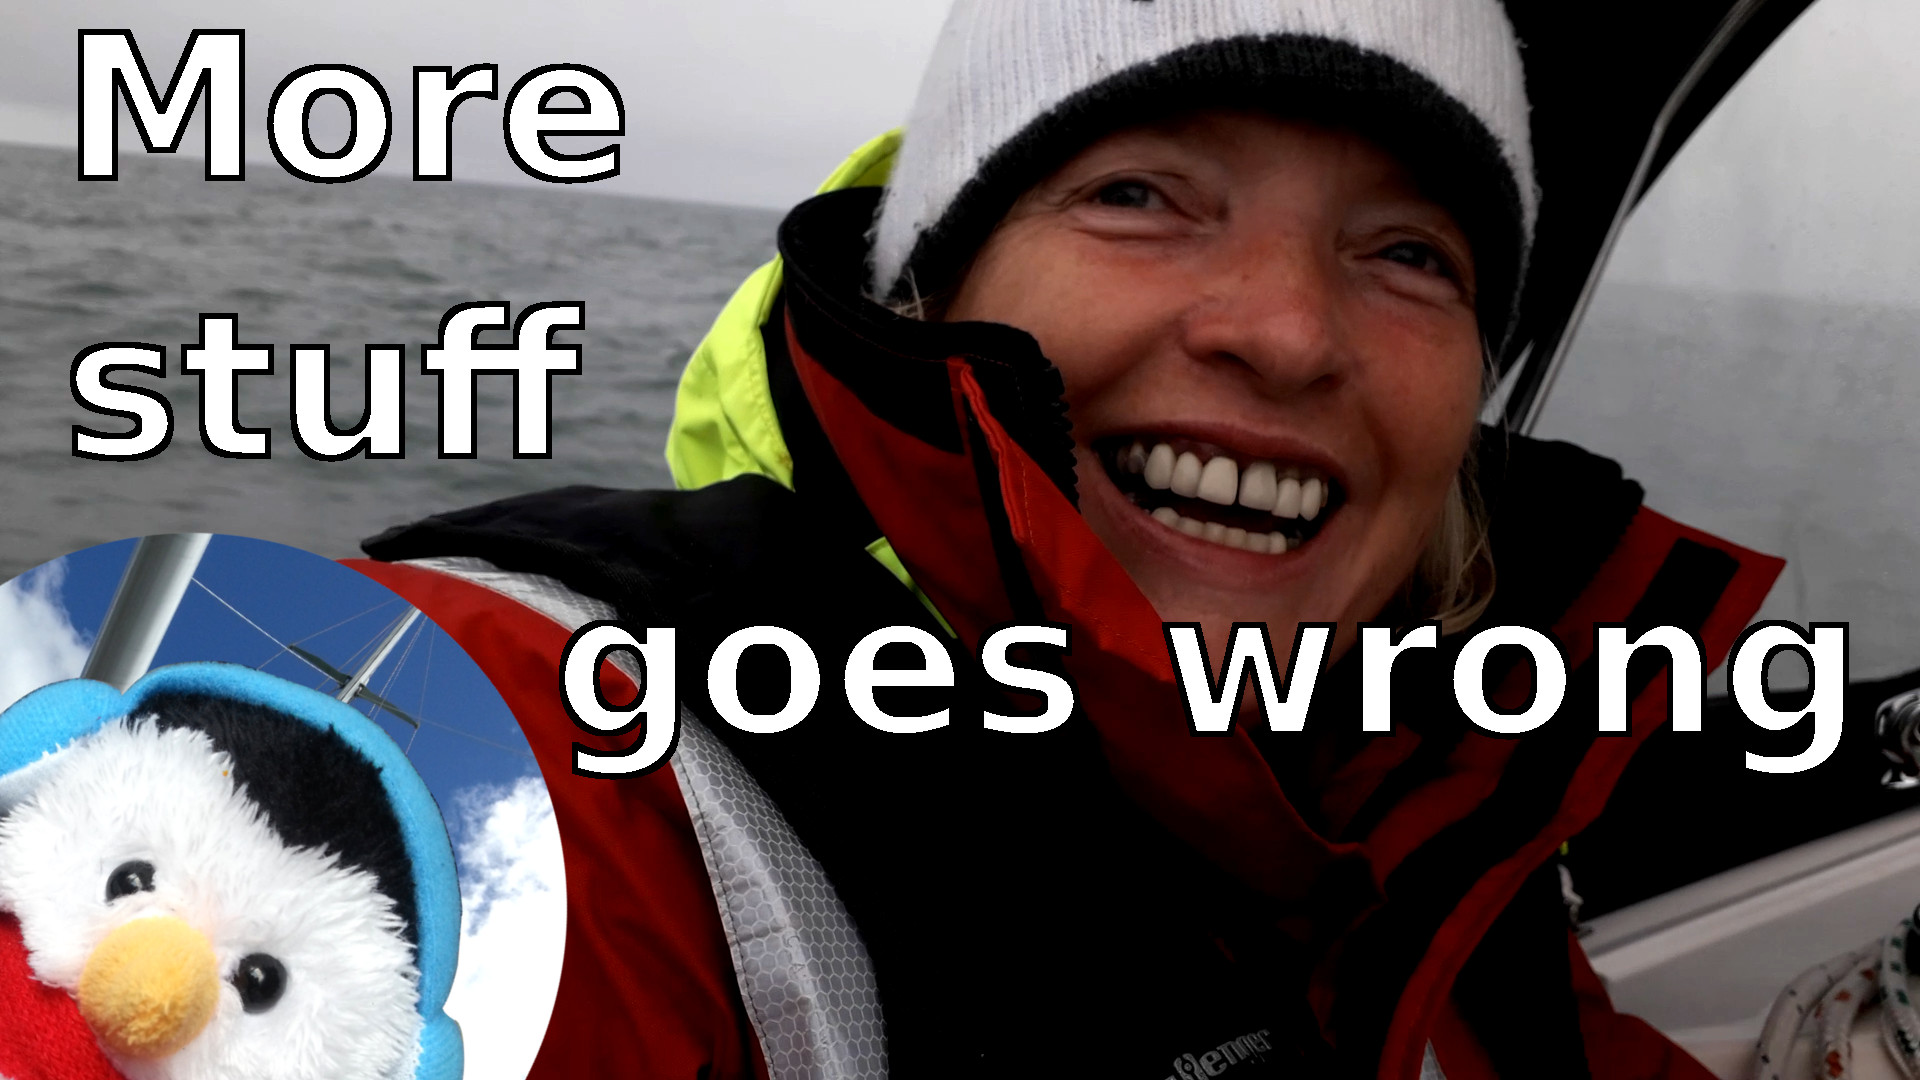 Watch our 'More Stuff goes wrong' video and add comments etc.